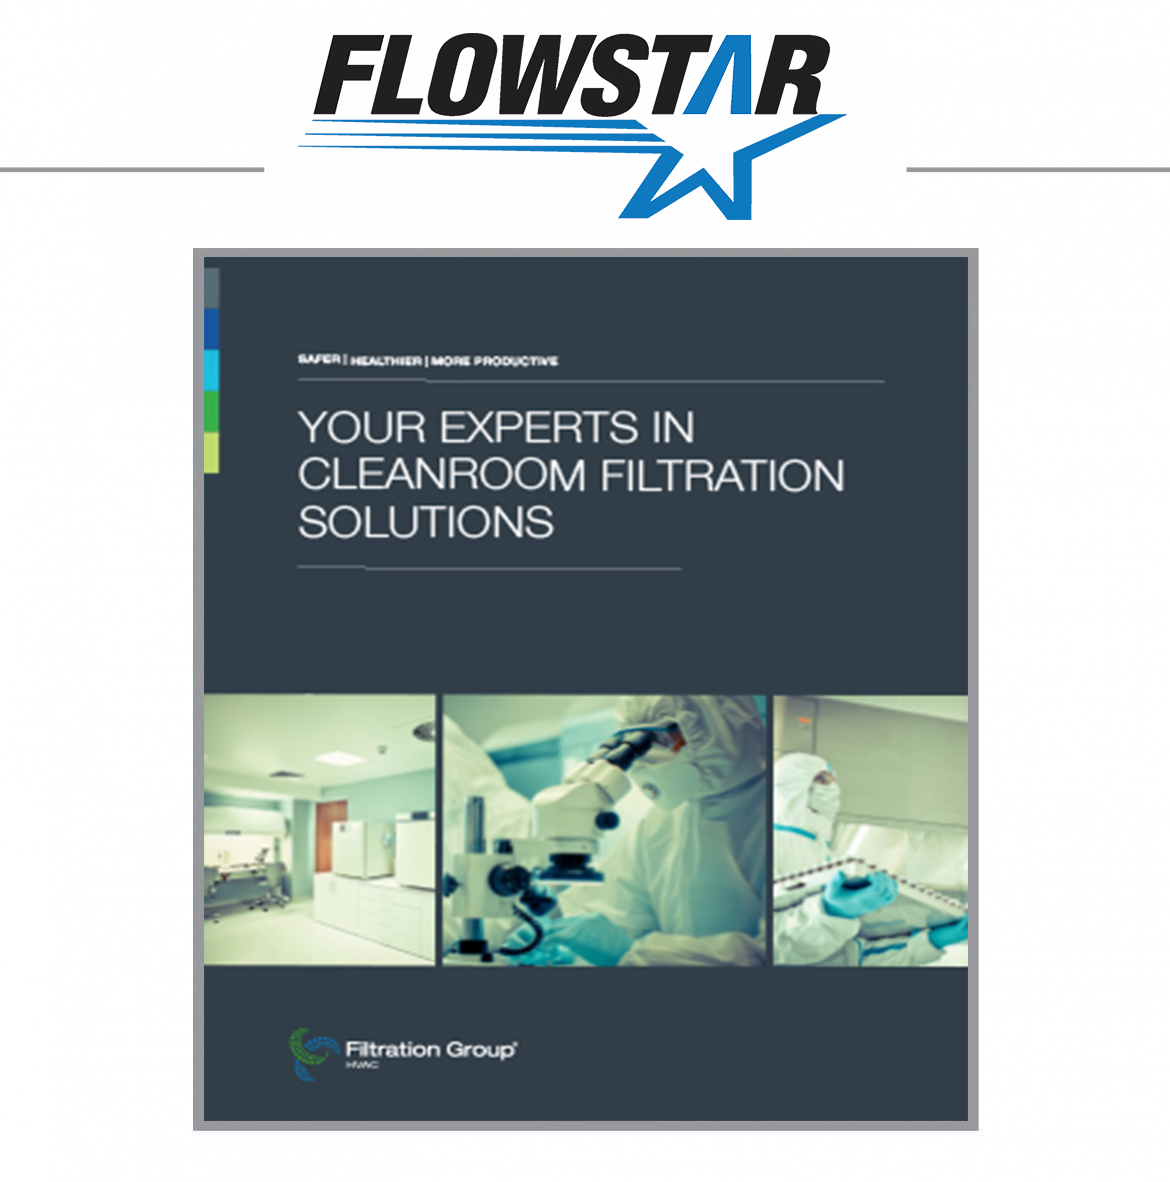 Cleanroom Filter Experts